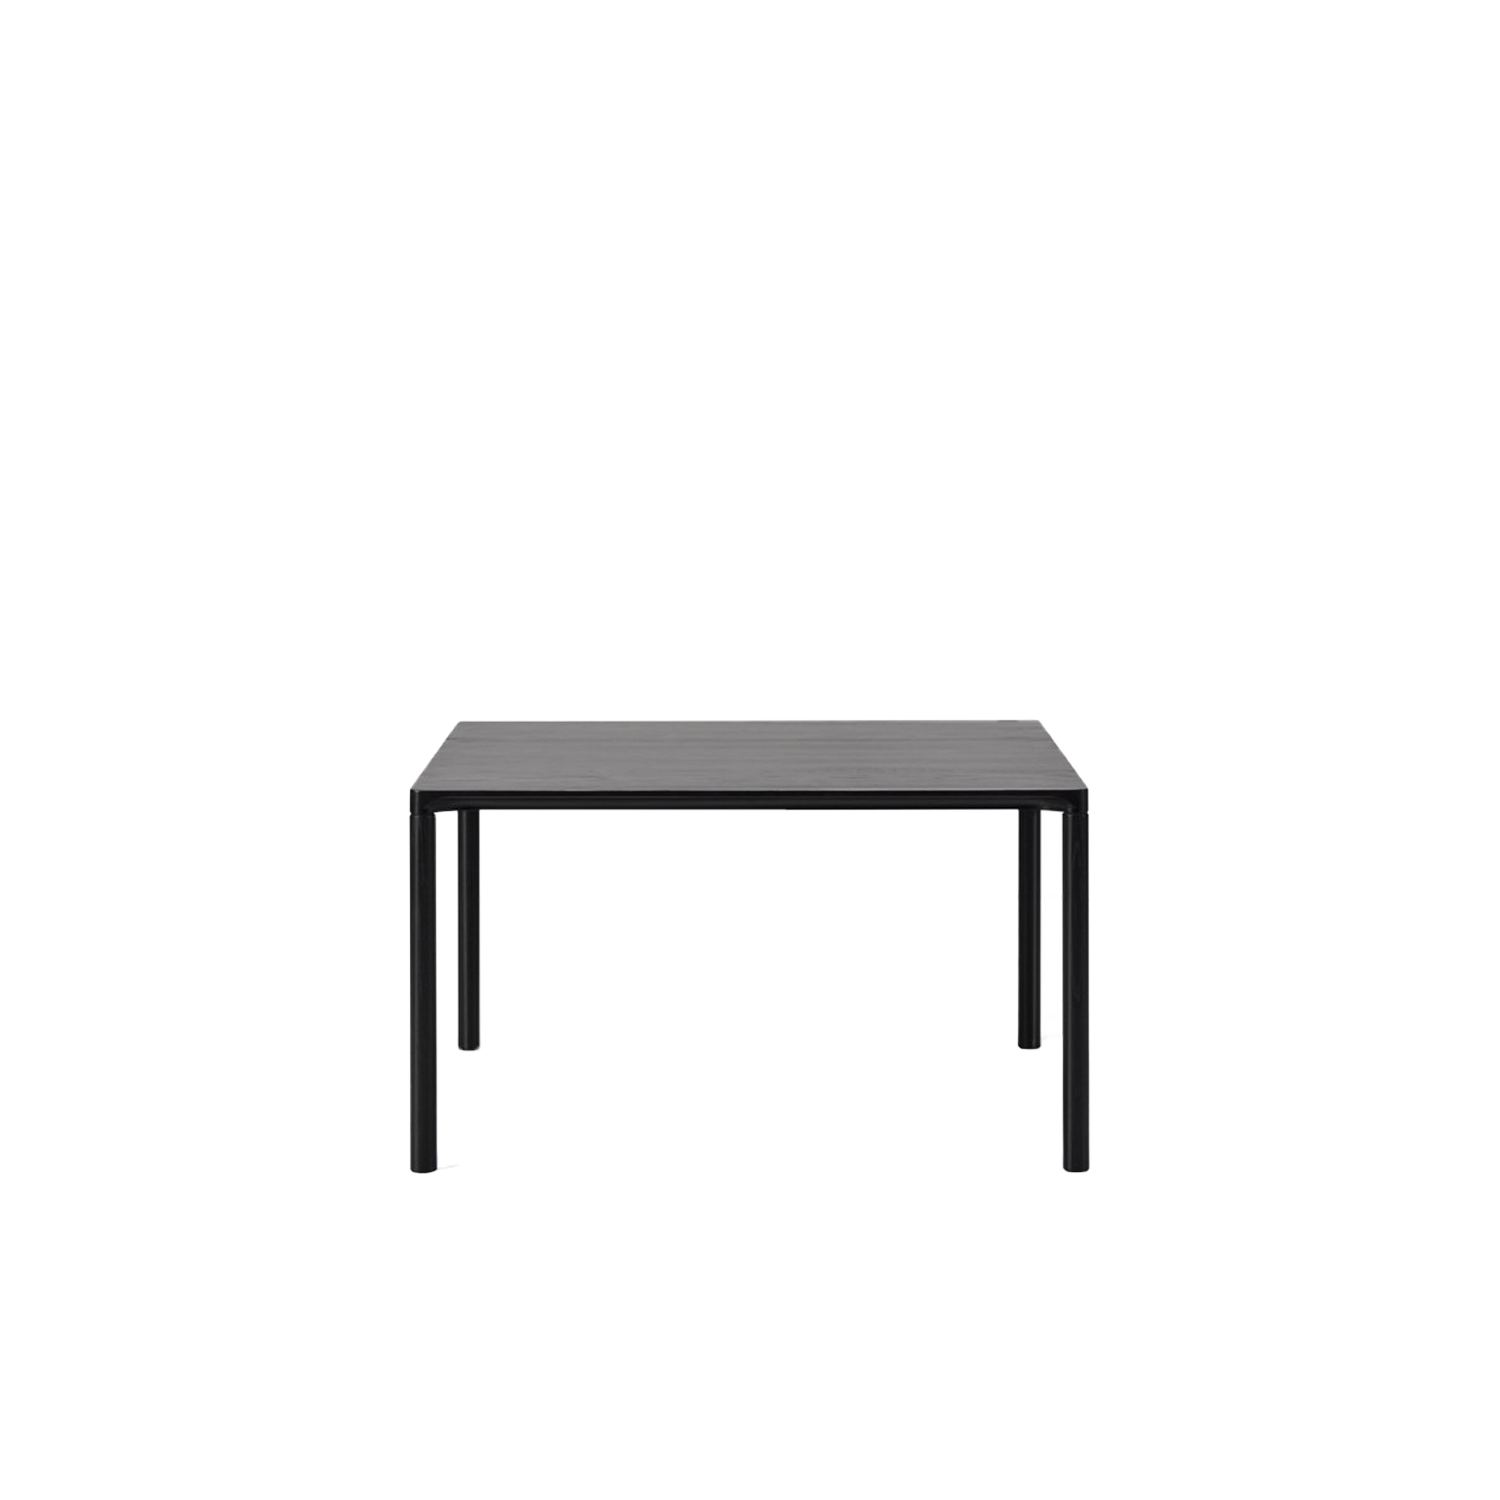 Piloti 6720 Side Table - Piloti is a series of solid oak side tables. The subtle detailing of the table top creates the impression of a single line, floating between four delicate legs. The tables are supplied in two heights and can be combined as a nest.